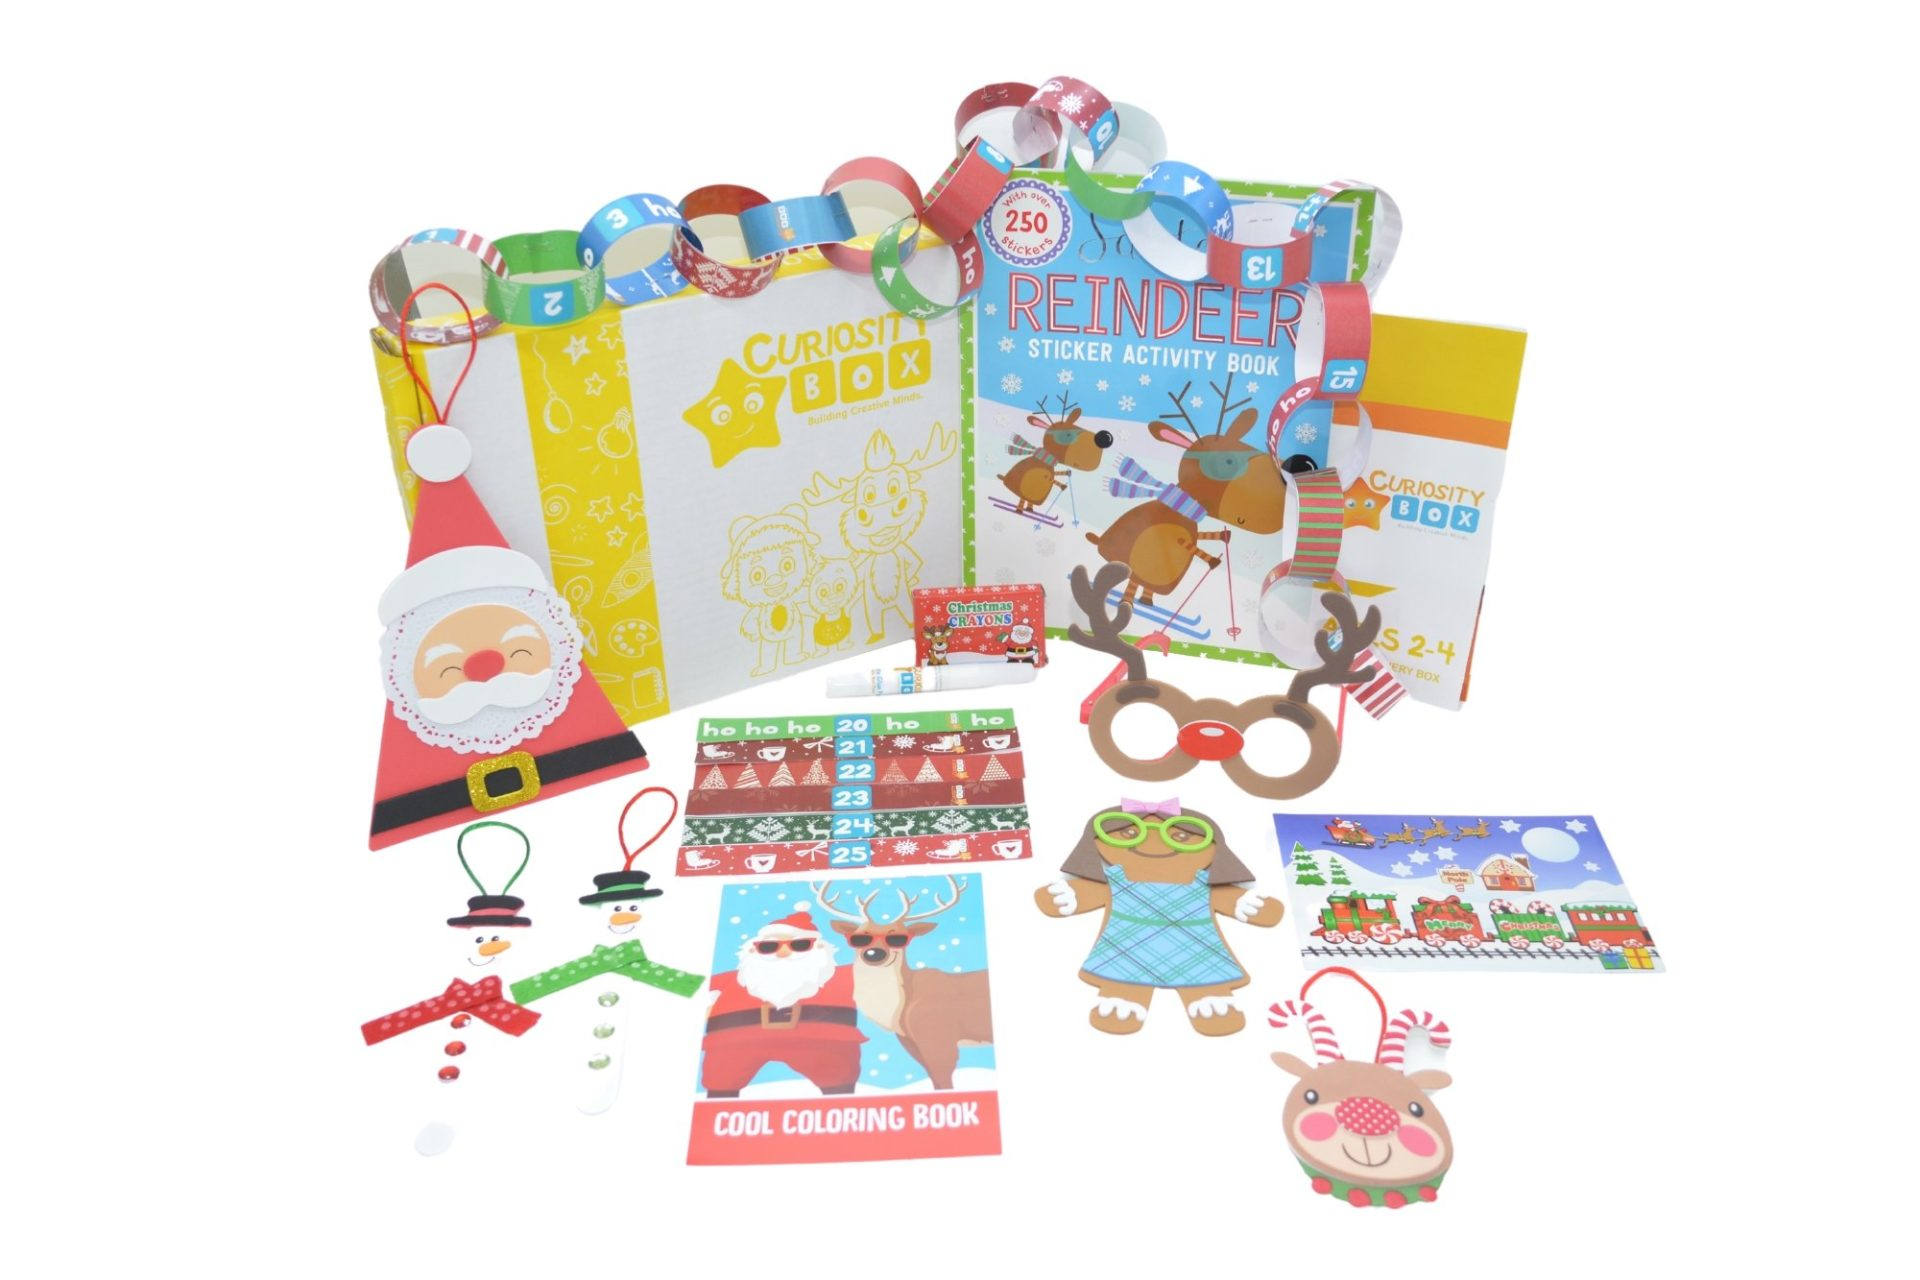 Crafty Christmas Countdown Craft Box 2-4- Curiosity-Box-Craft-and-Educational-Boxes-Kids-Monthly-Subscription-Box